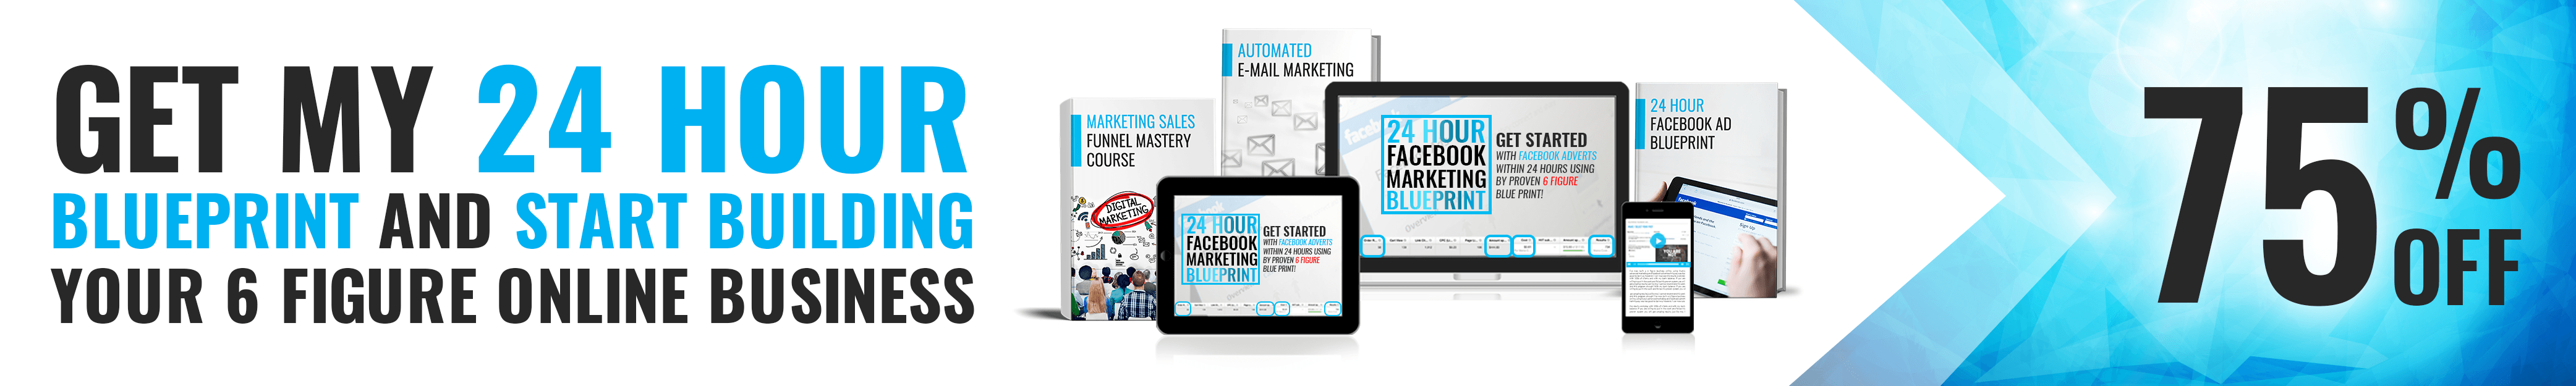 Why facebook adverts are the next big thing in marketing roi machines get started now with my 24 hour facebook blueprint helping you obtain customers and set up new traffic generating machines within 24 hours malvernweather Images